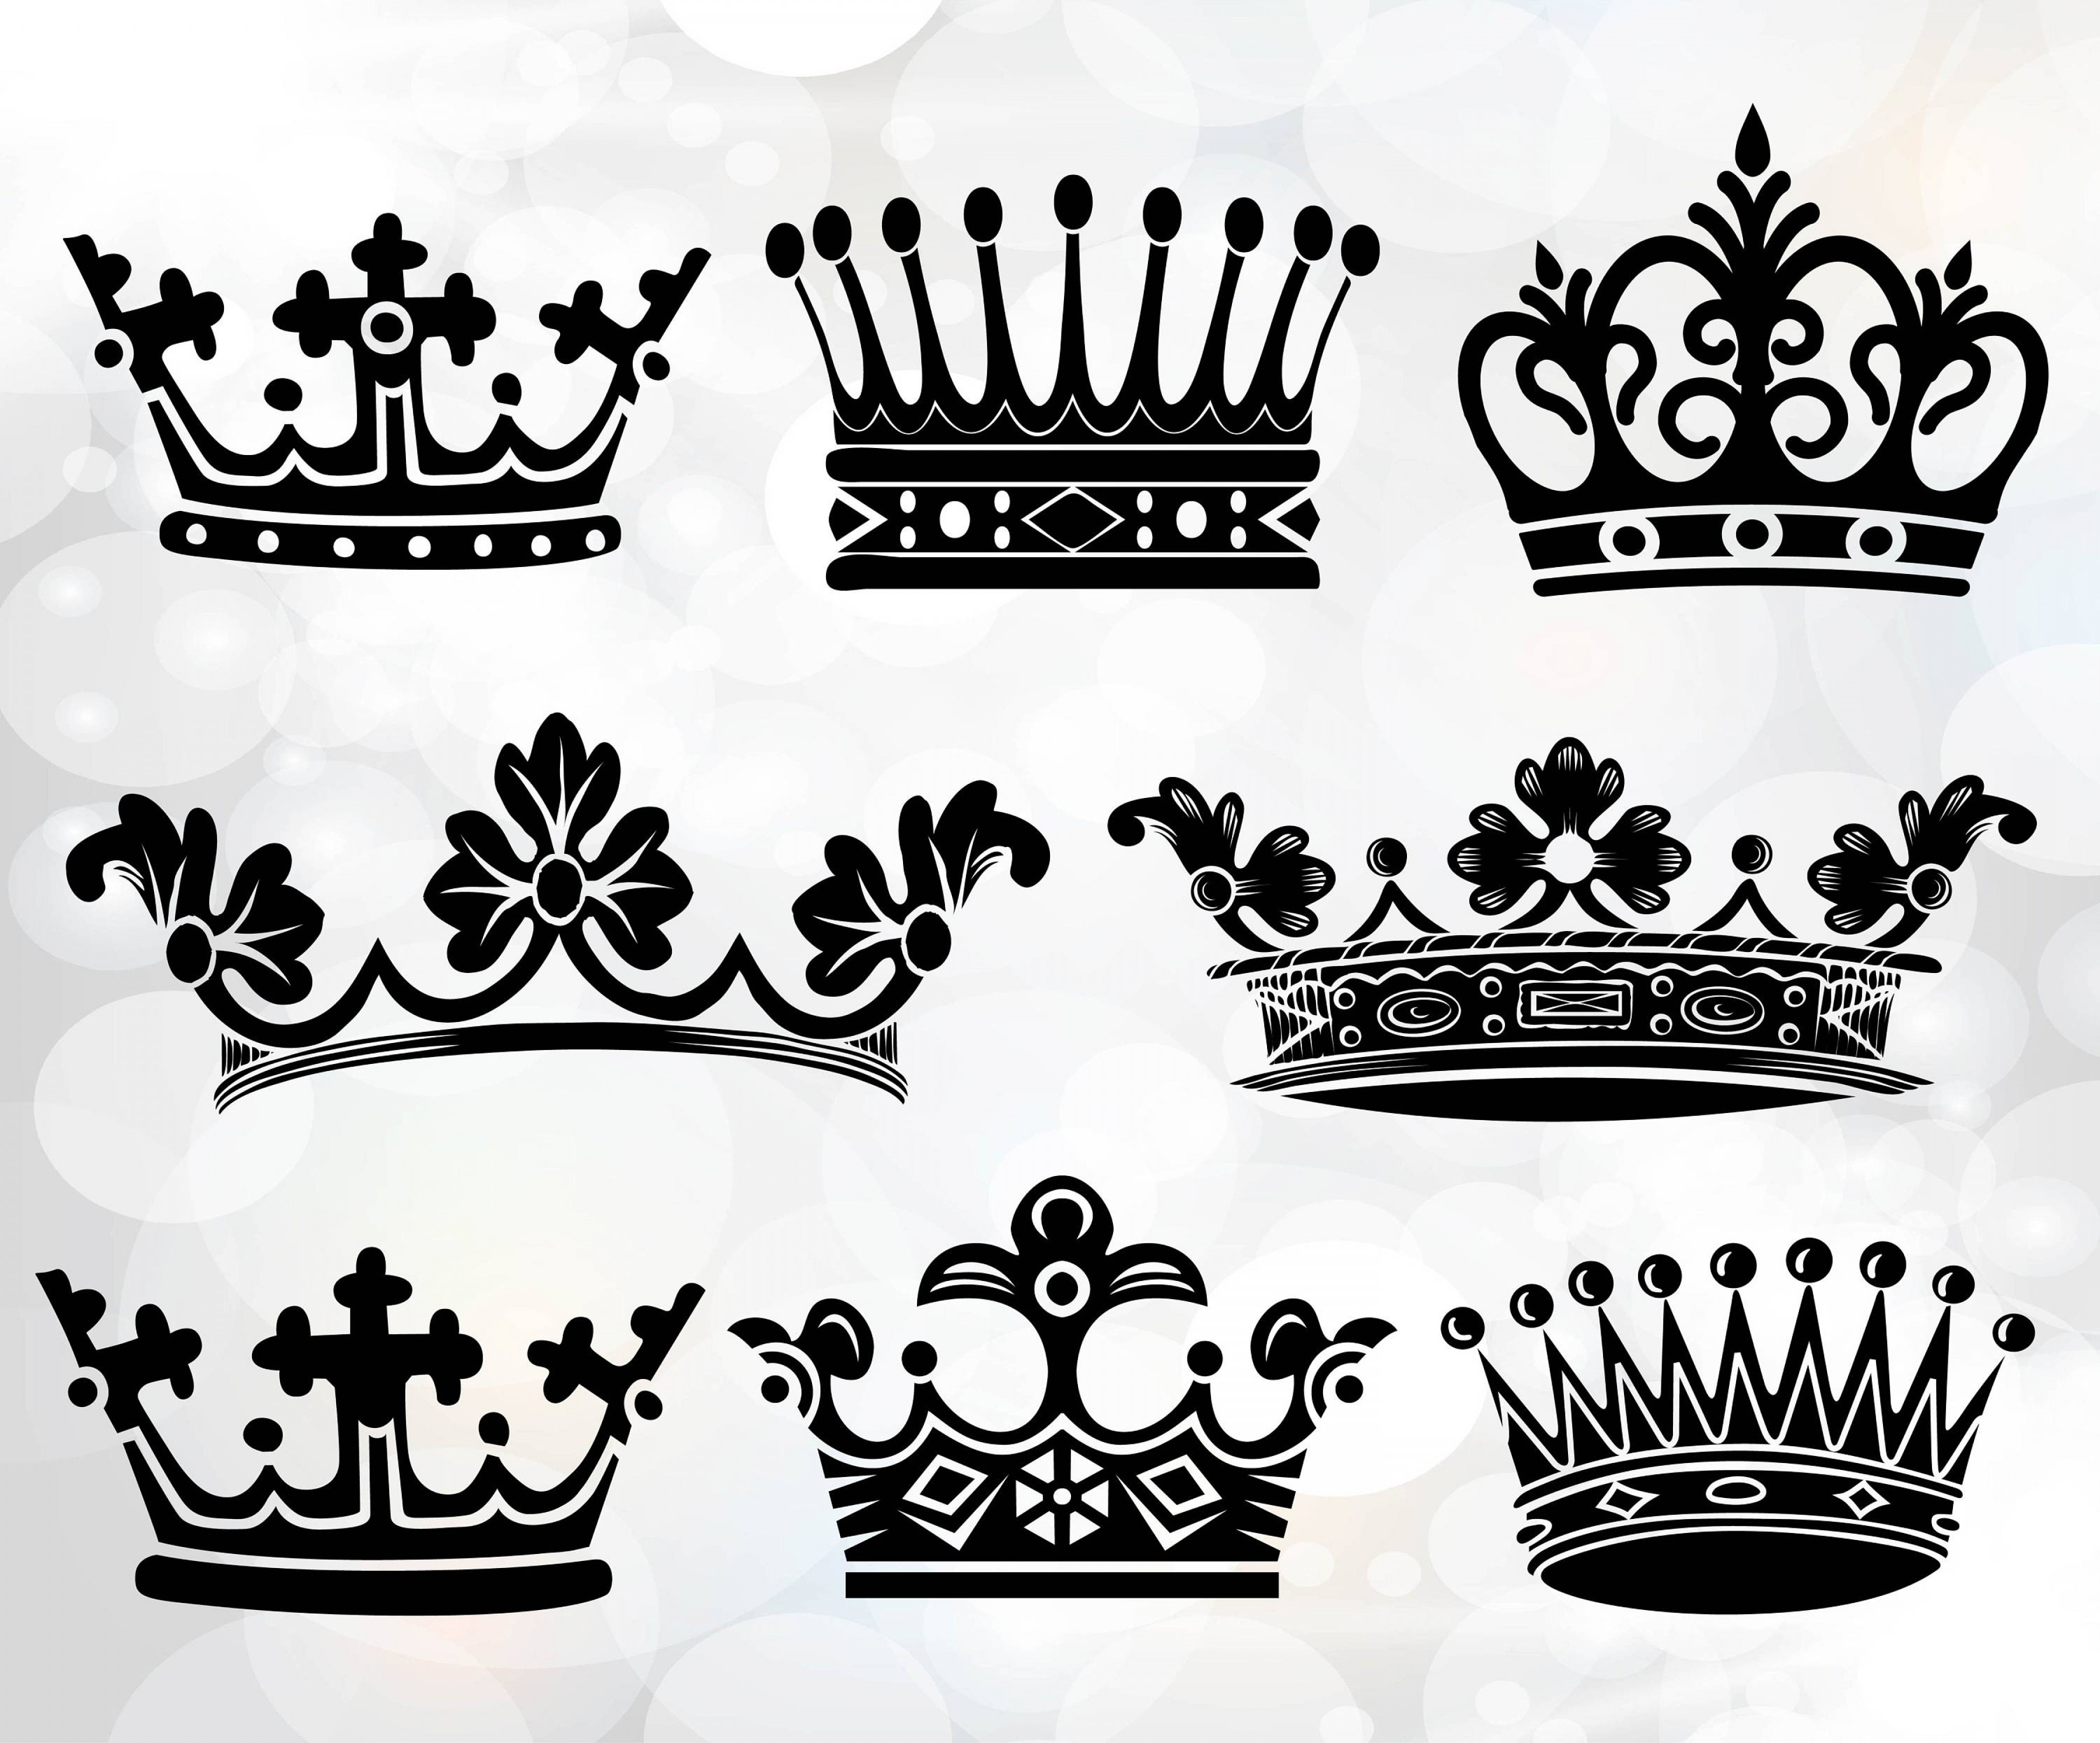 King And Queen Vector: Crown Svg Crowns Svg Crown Monogram Svg